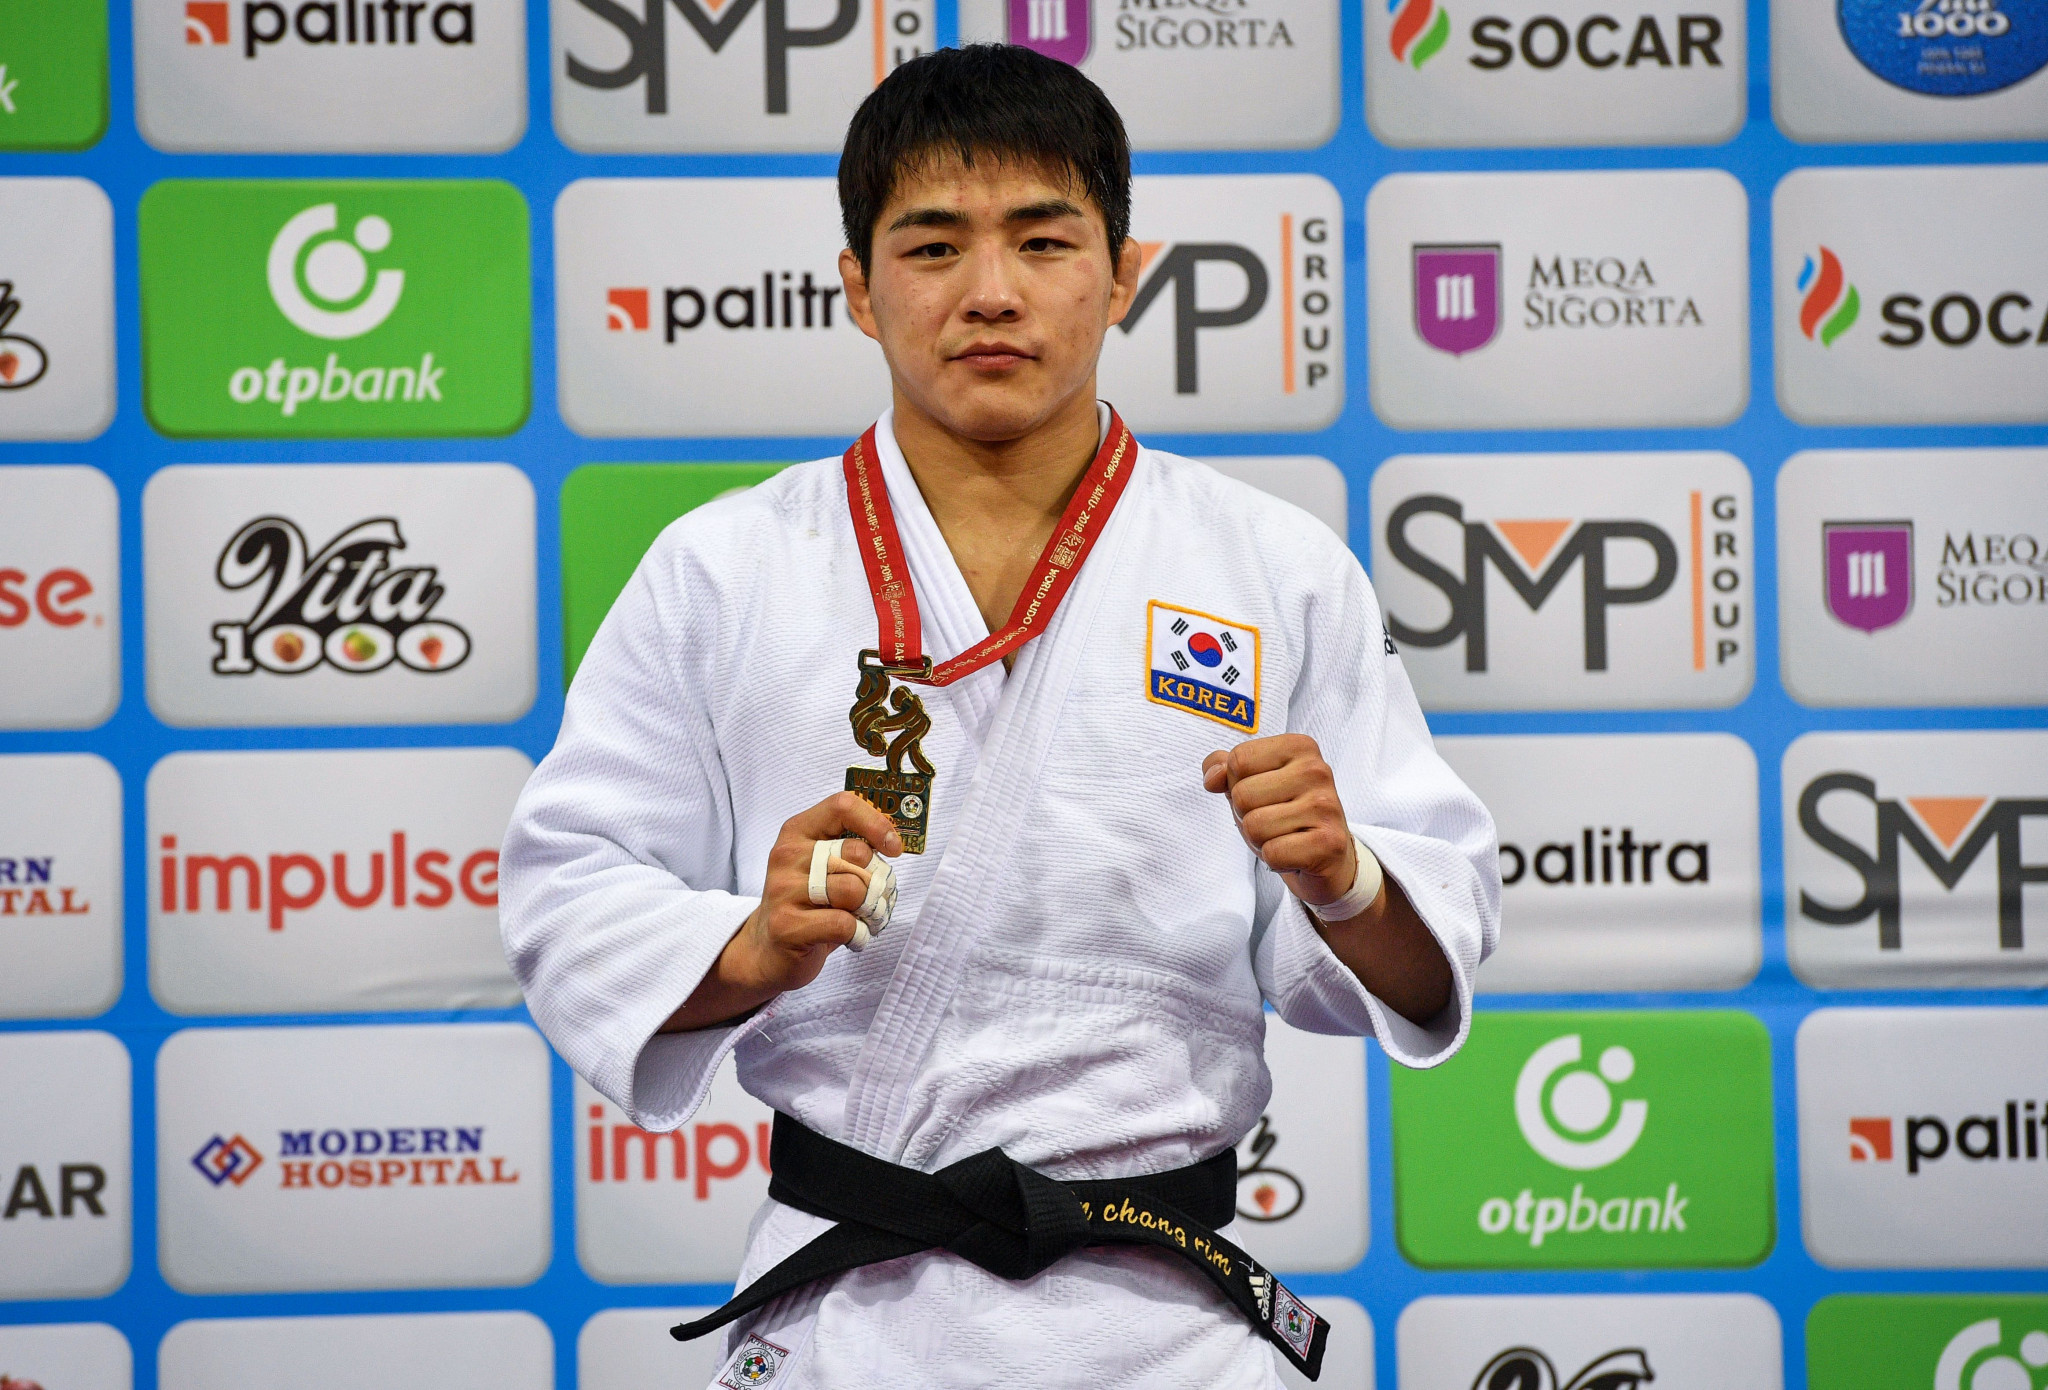 An Changrim poses with his first senior World Championship gold medal after dethroning Hashimoto ©Getty Images